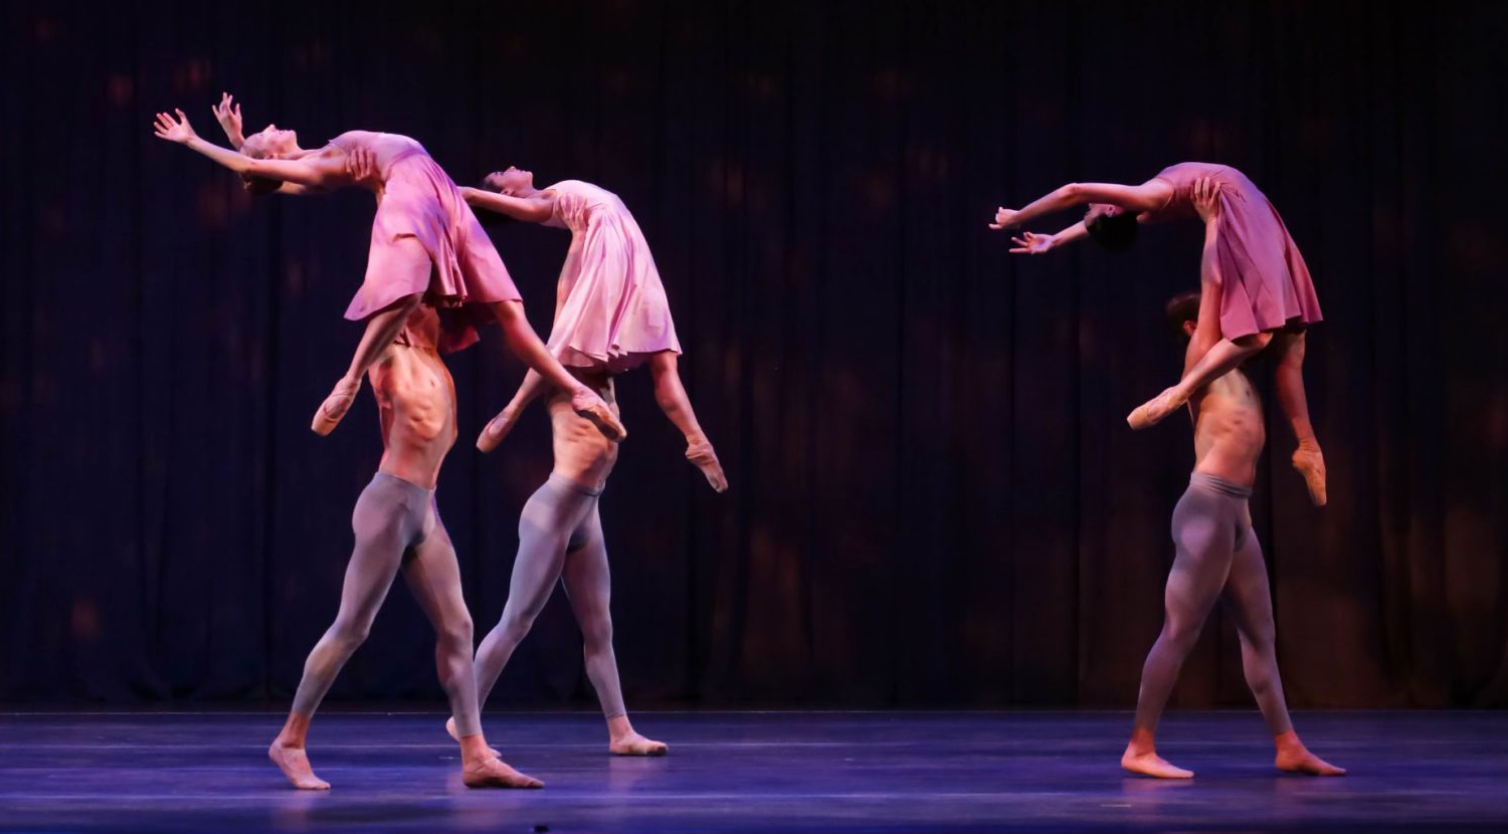 National Choreographer's Initiative Goes Dark for the First Time in 17 Years